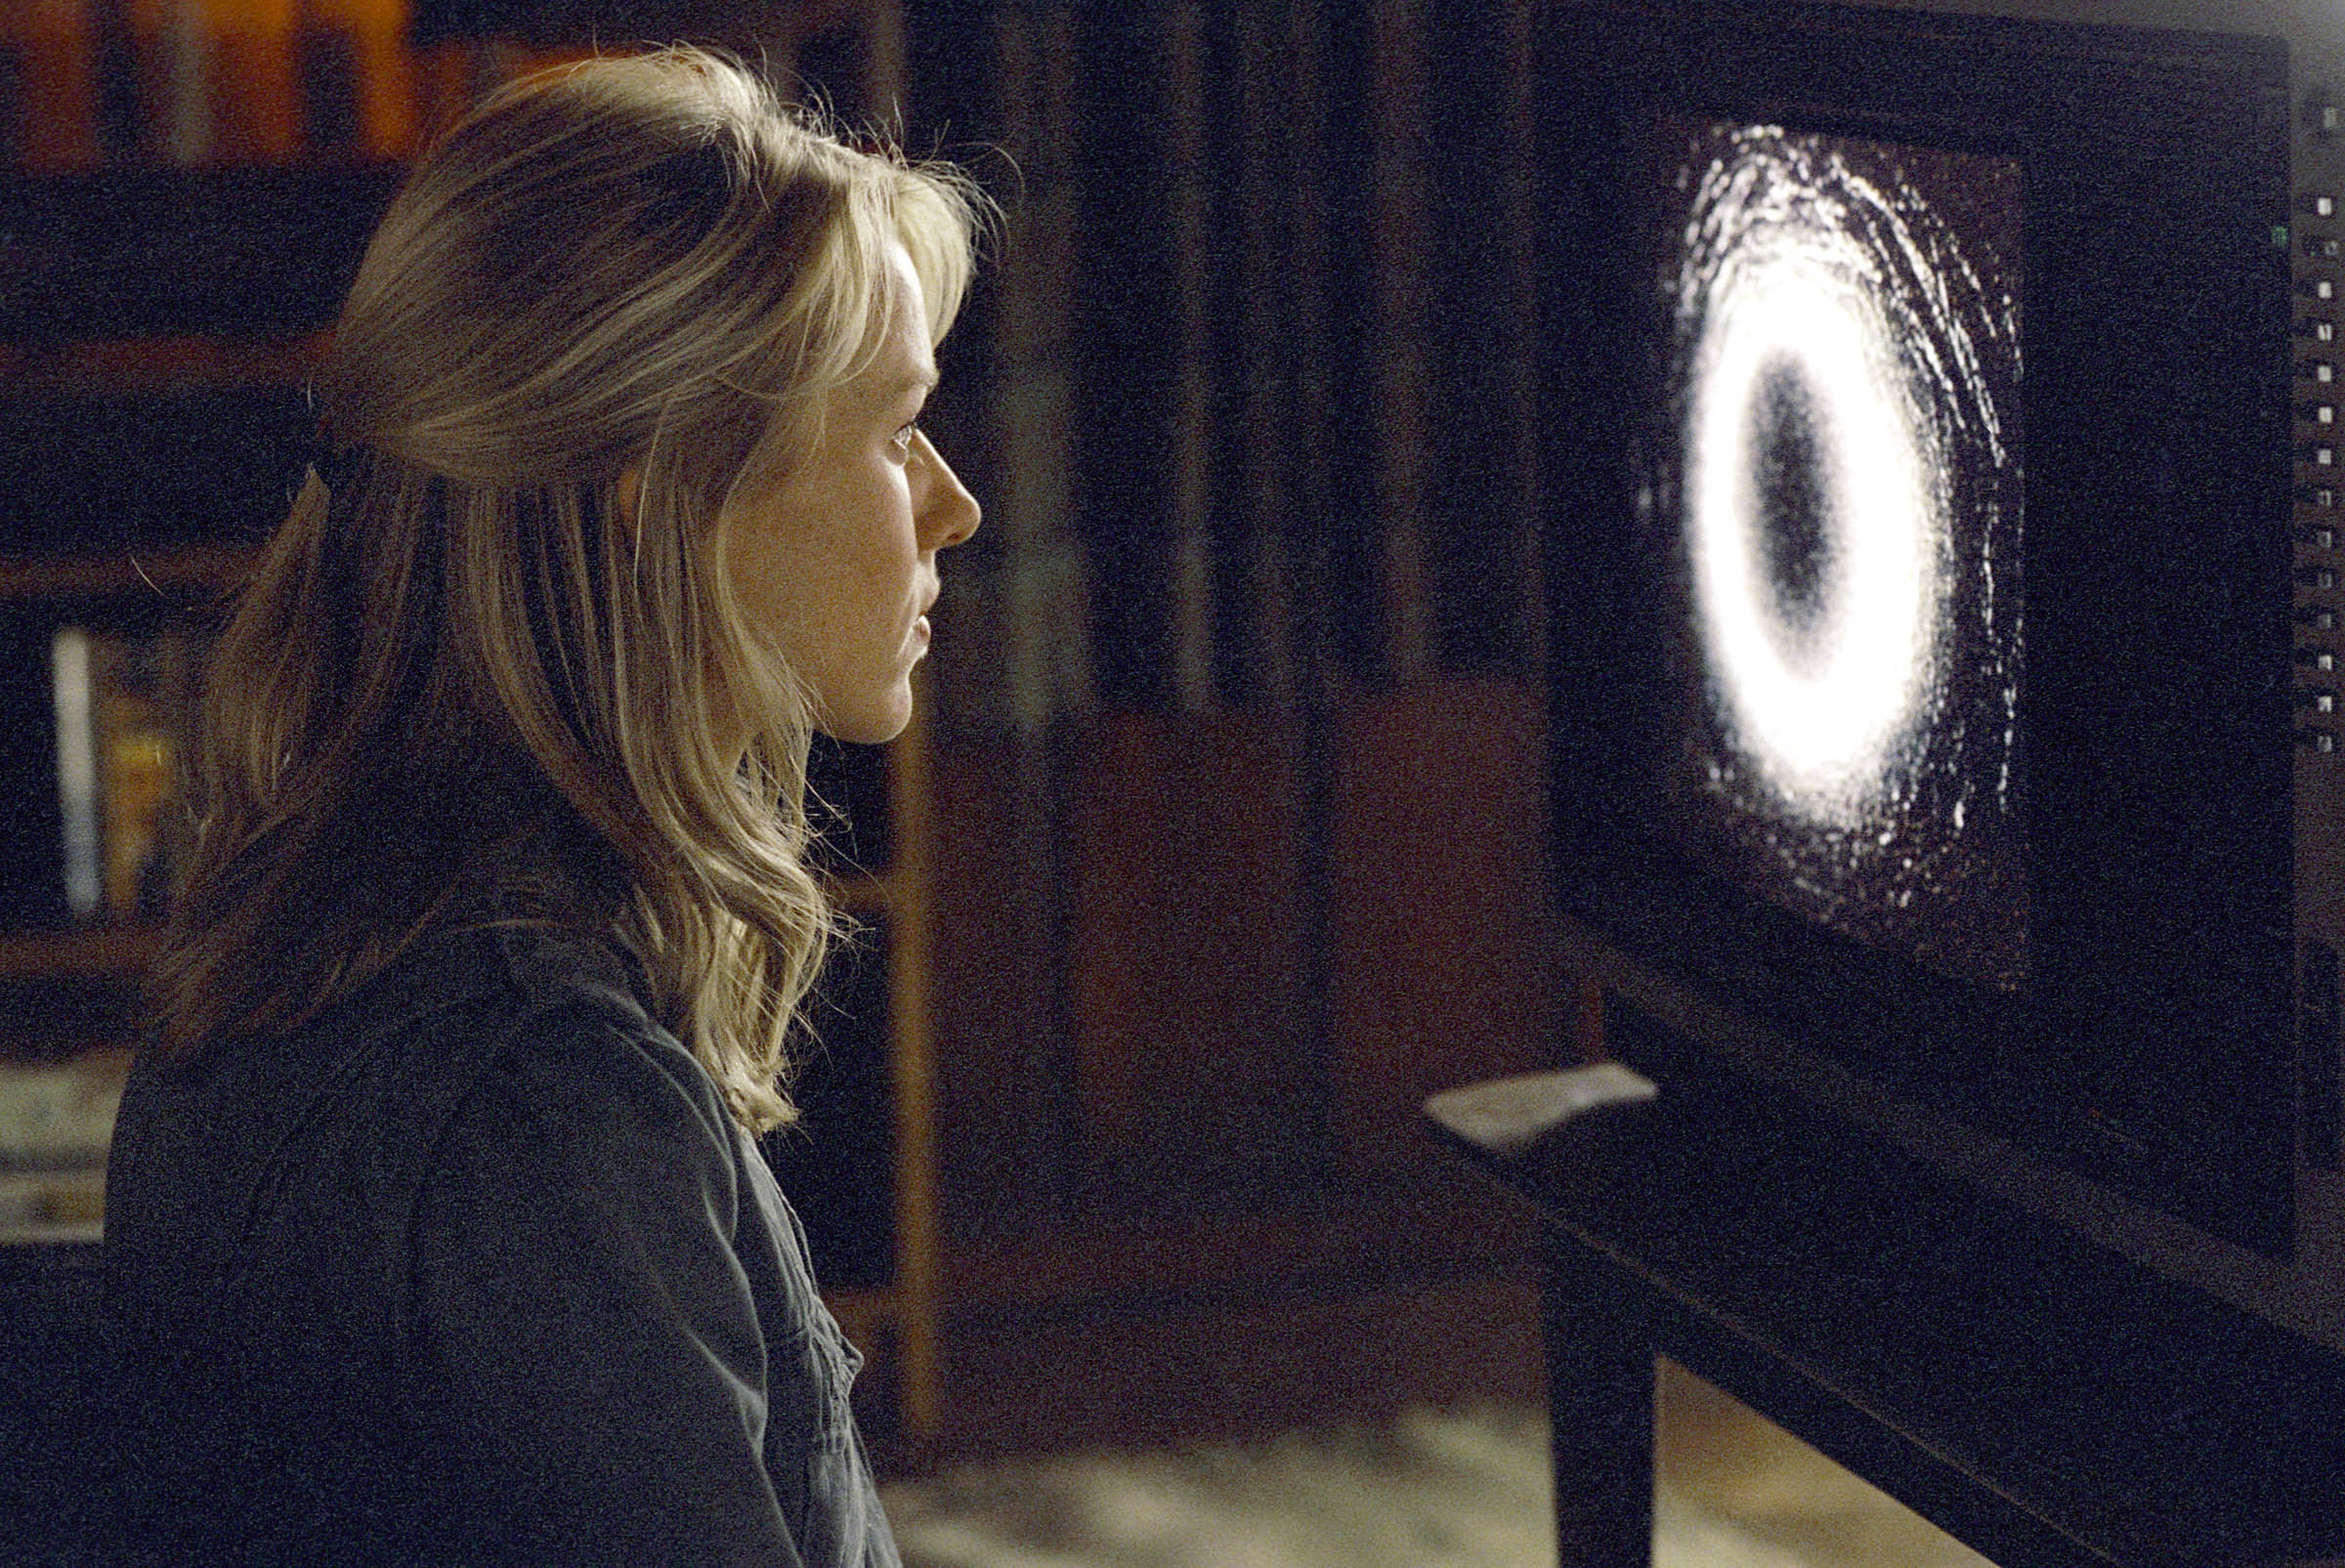 Naomi Watts sits down to watch the cursed videotape in The Ring (2002)